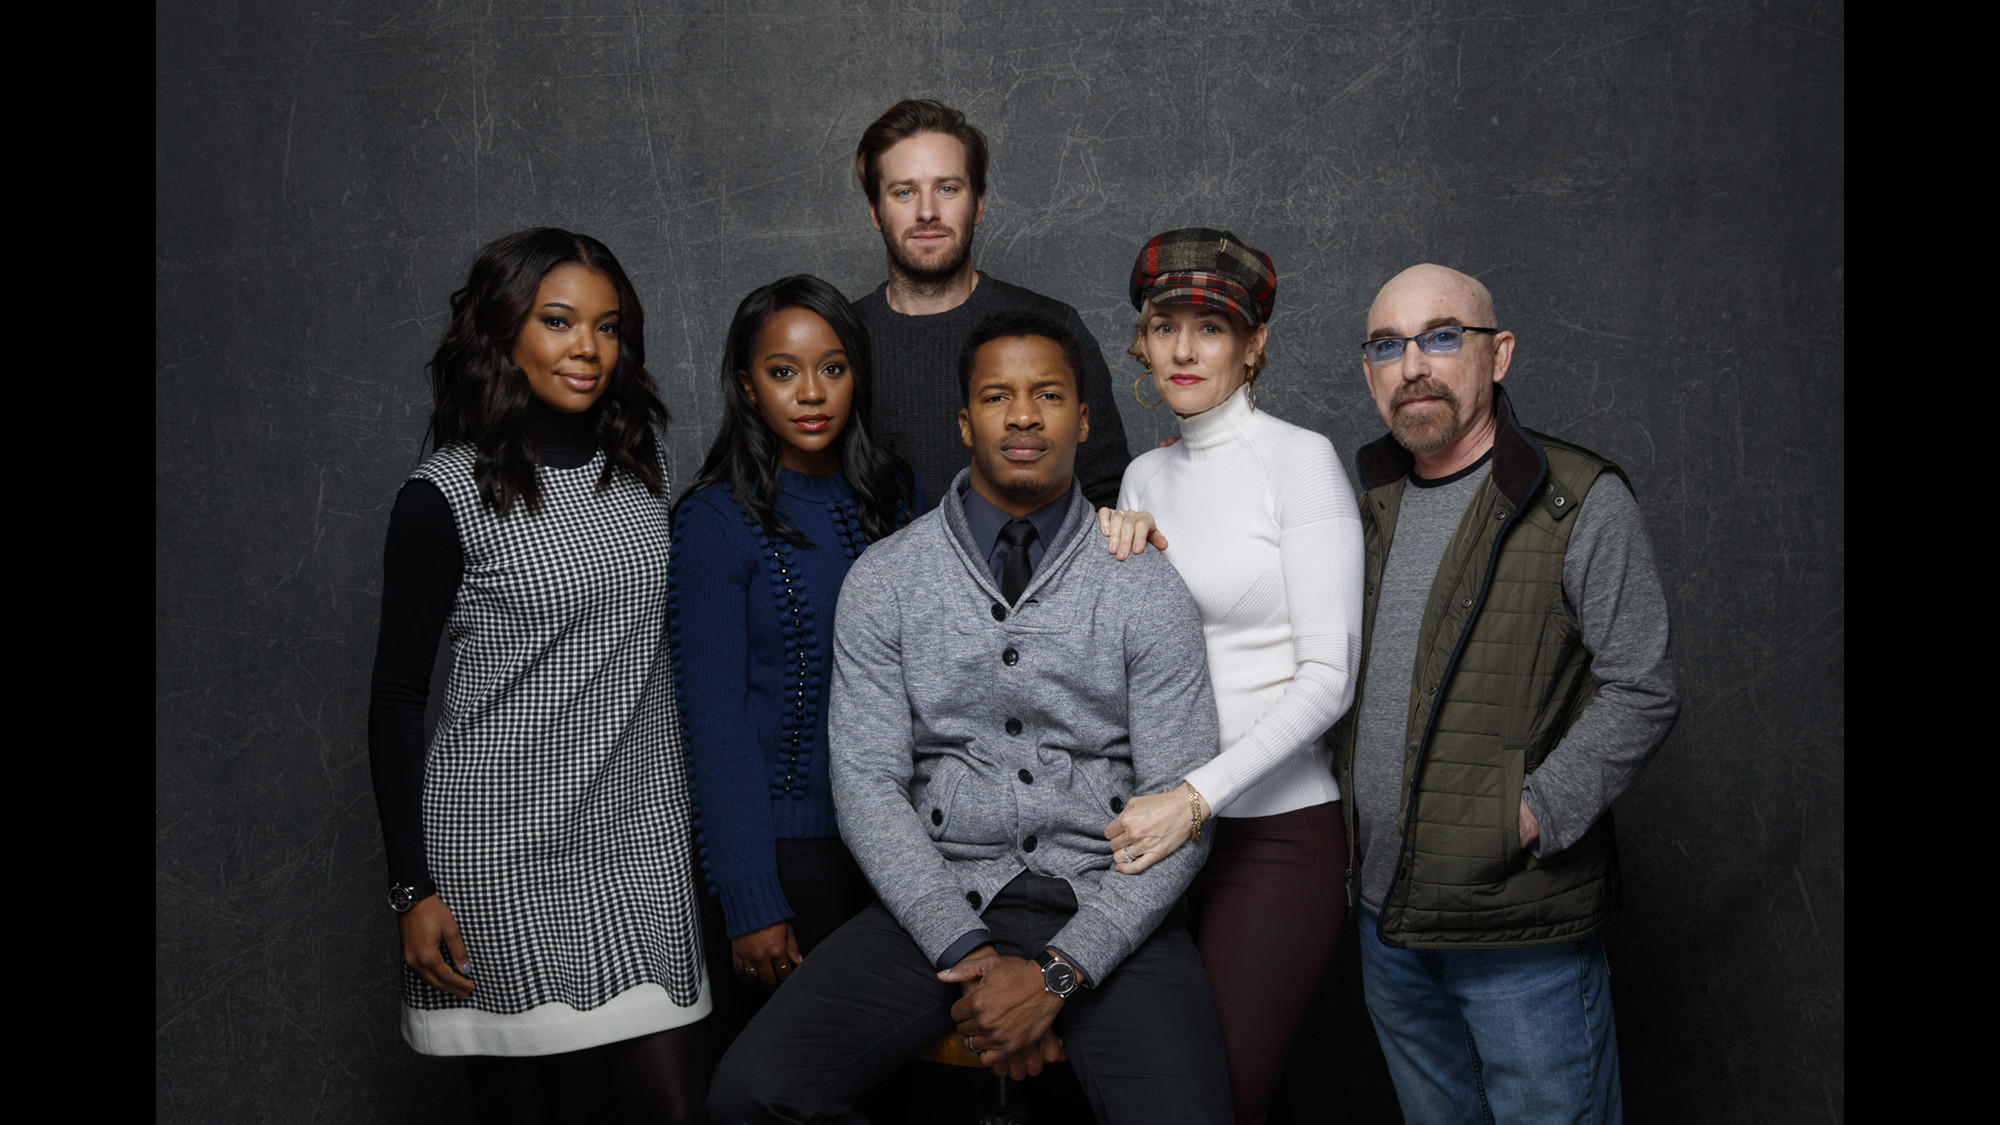 'The Birth of a Nation' cast Sundance Film Festival Portraits